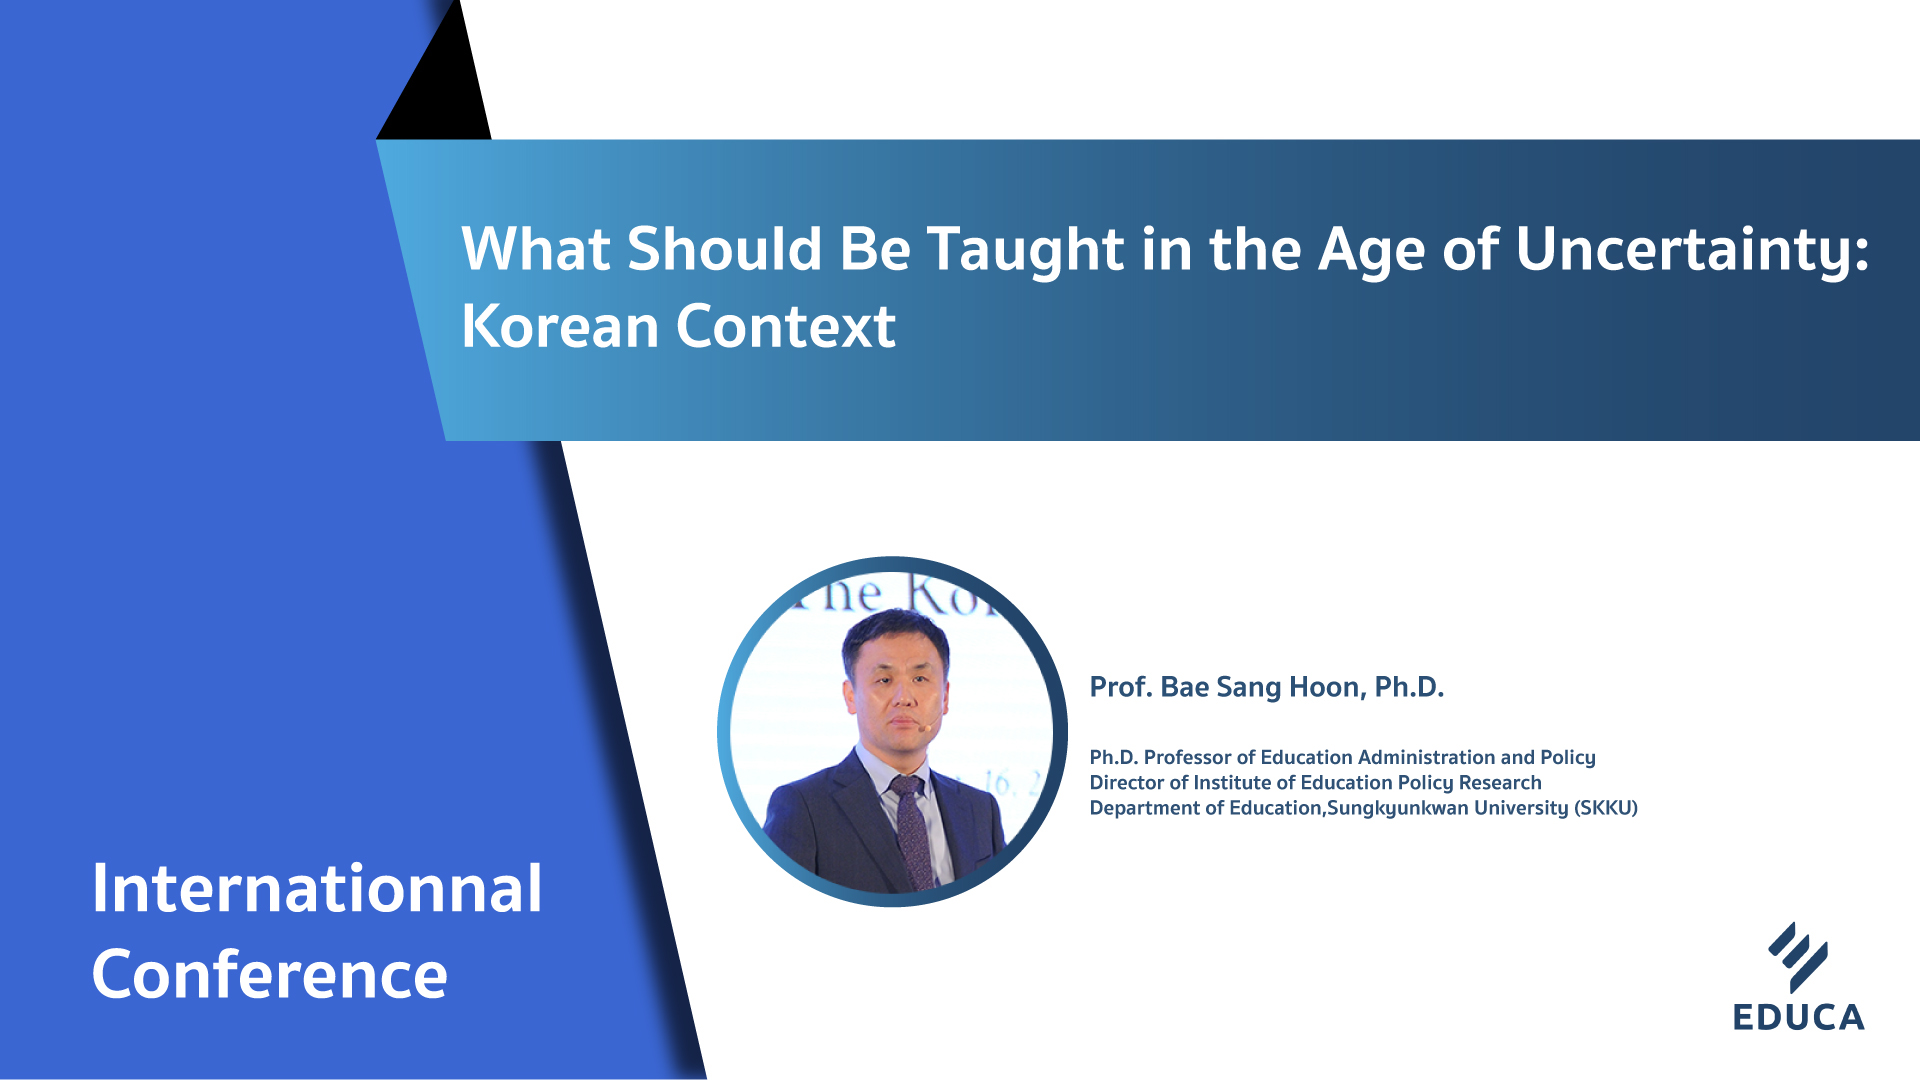 What Should Be Taught in the Age of Uncertainty: Korean Context